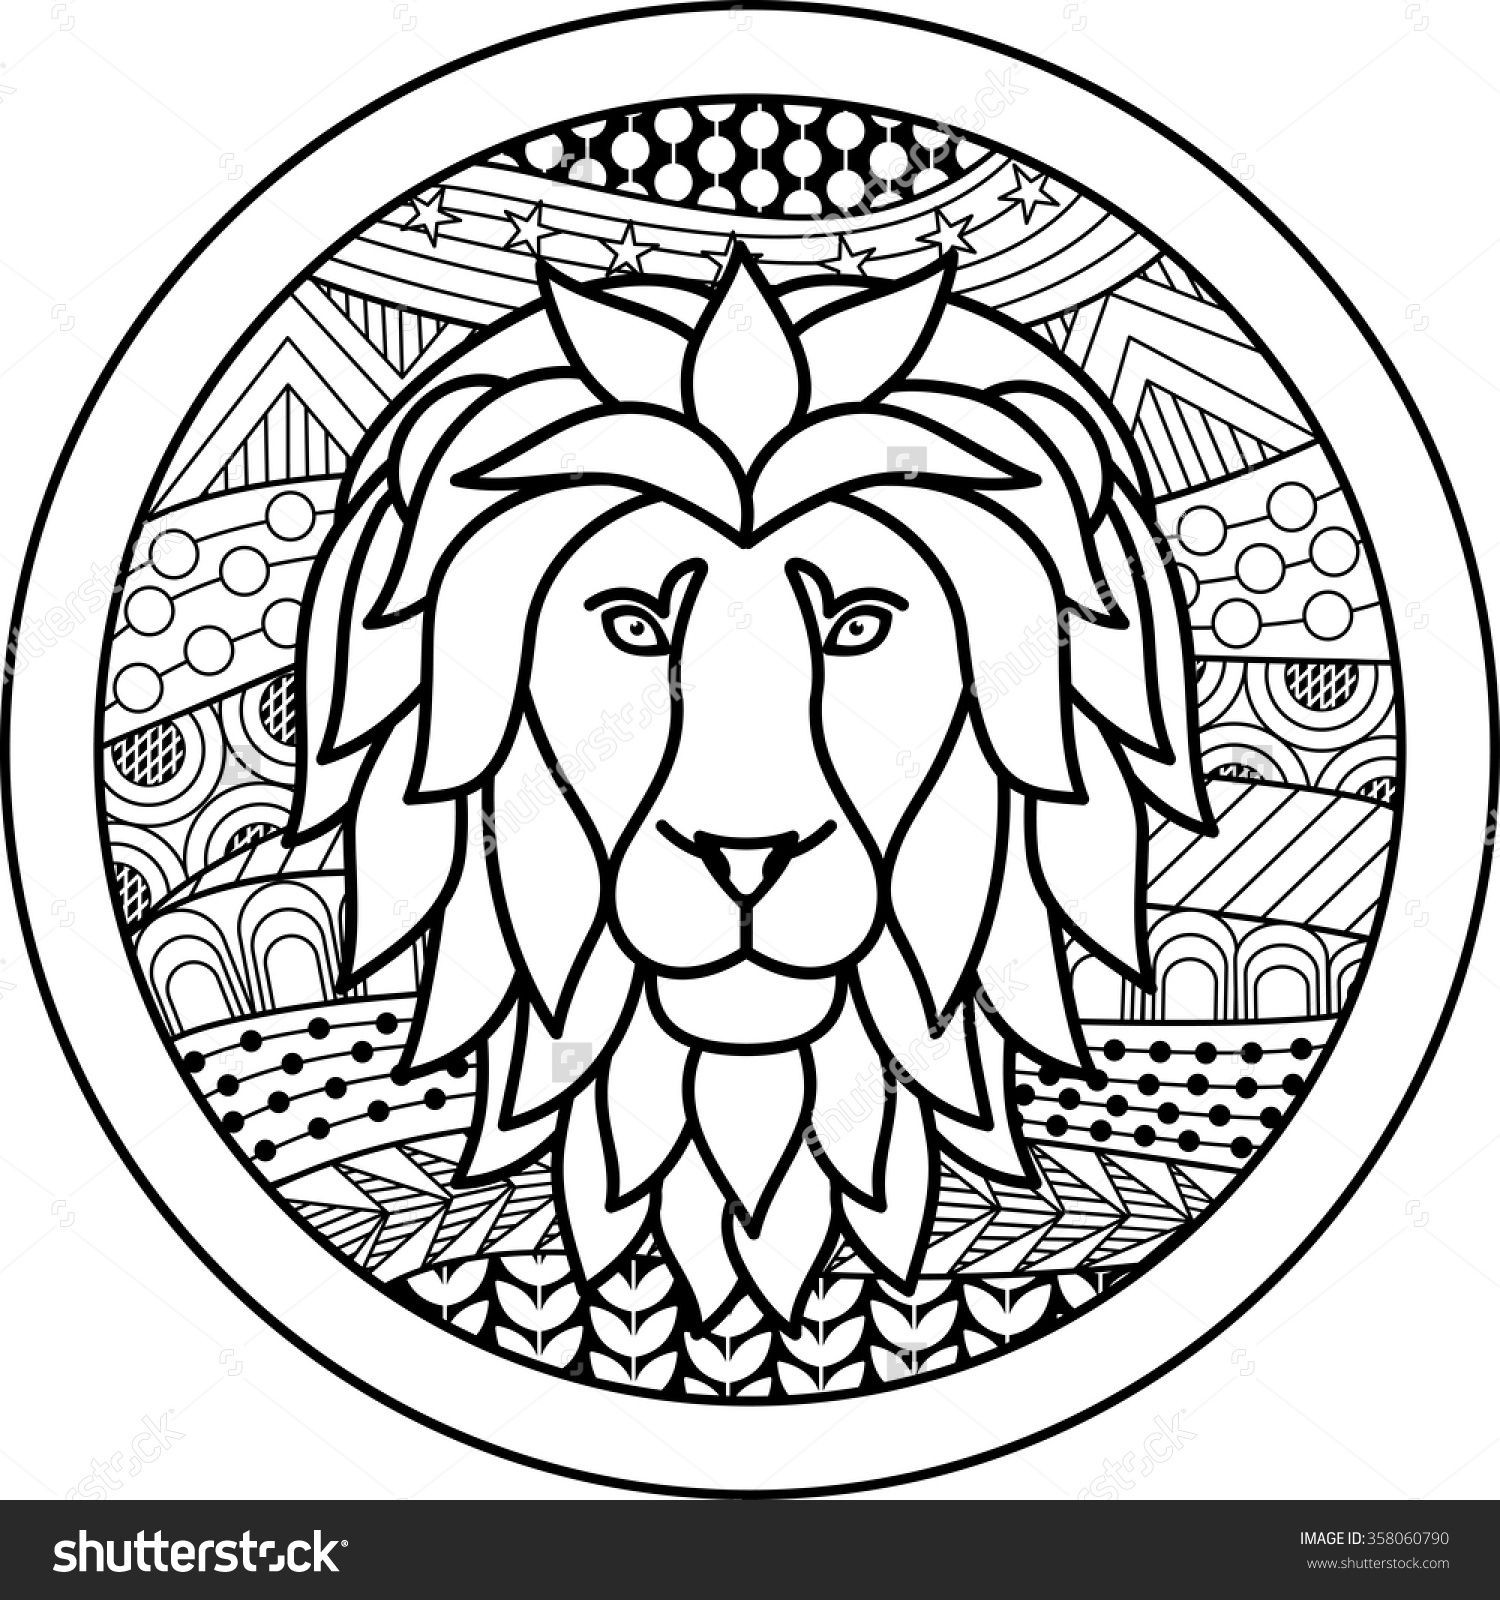 Best ideas about Zodiac Coloring Pages For Adults . Save or Pin Zodiac sign Leo zentangle Now.